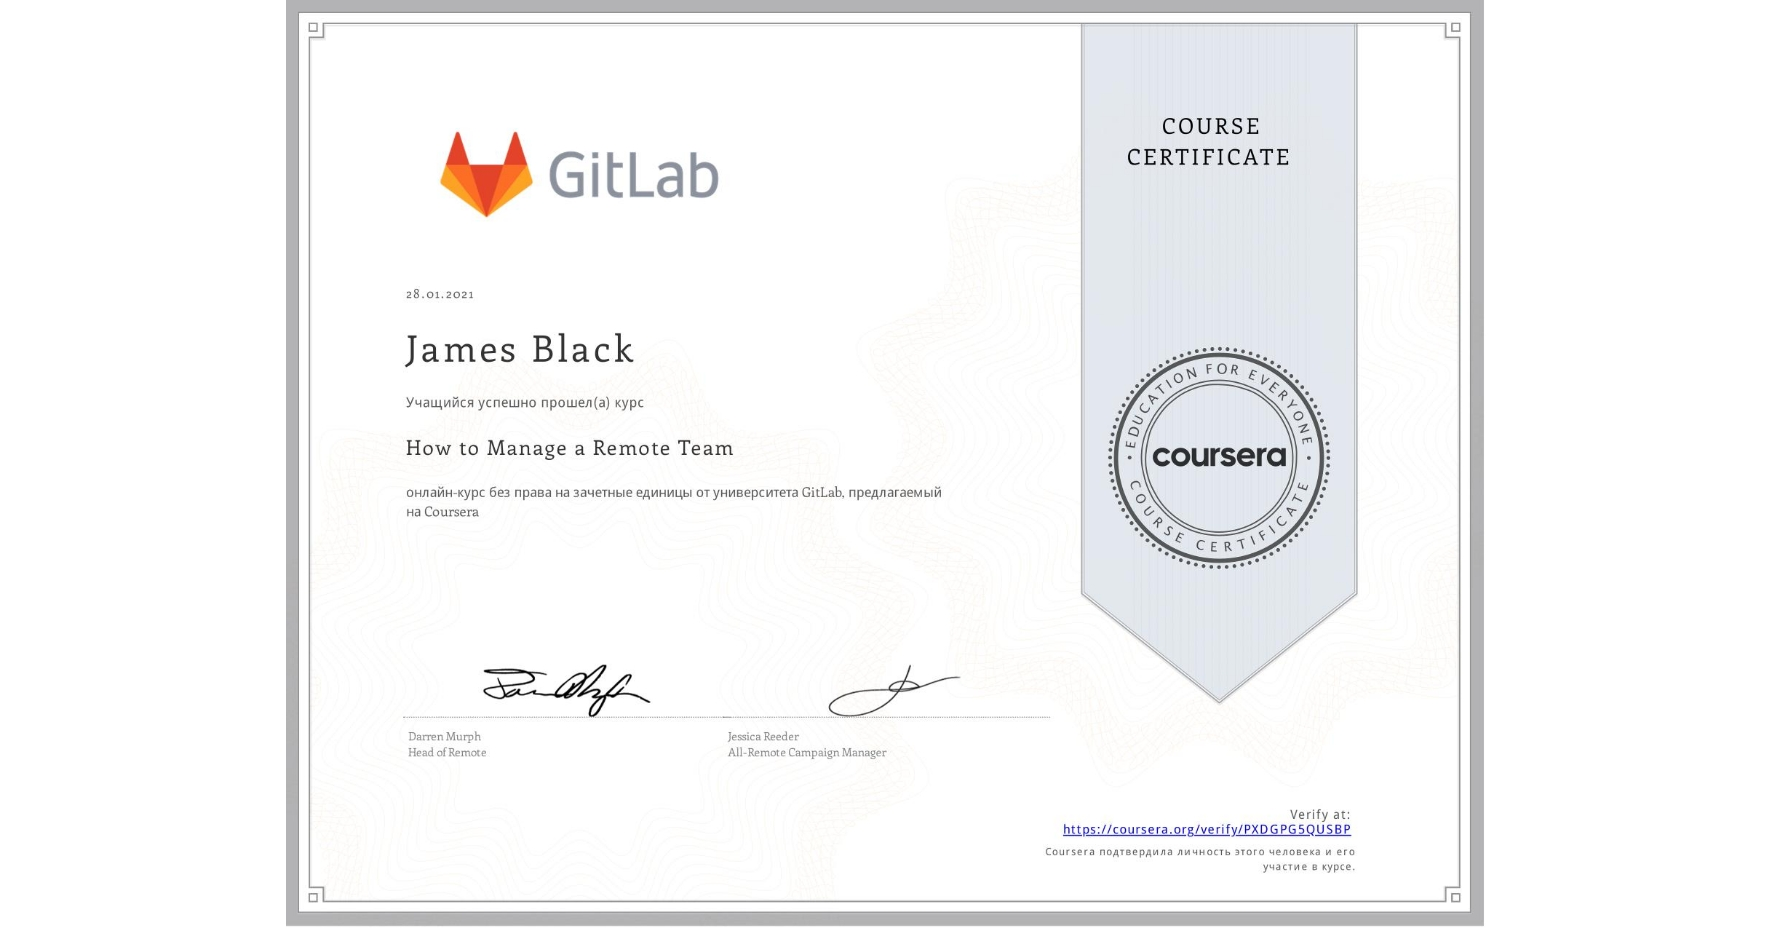 View certificate for James Black, How to Manage a Remote Team, an online non-credit course authorized by GitLab and offered through Coursera